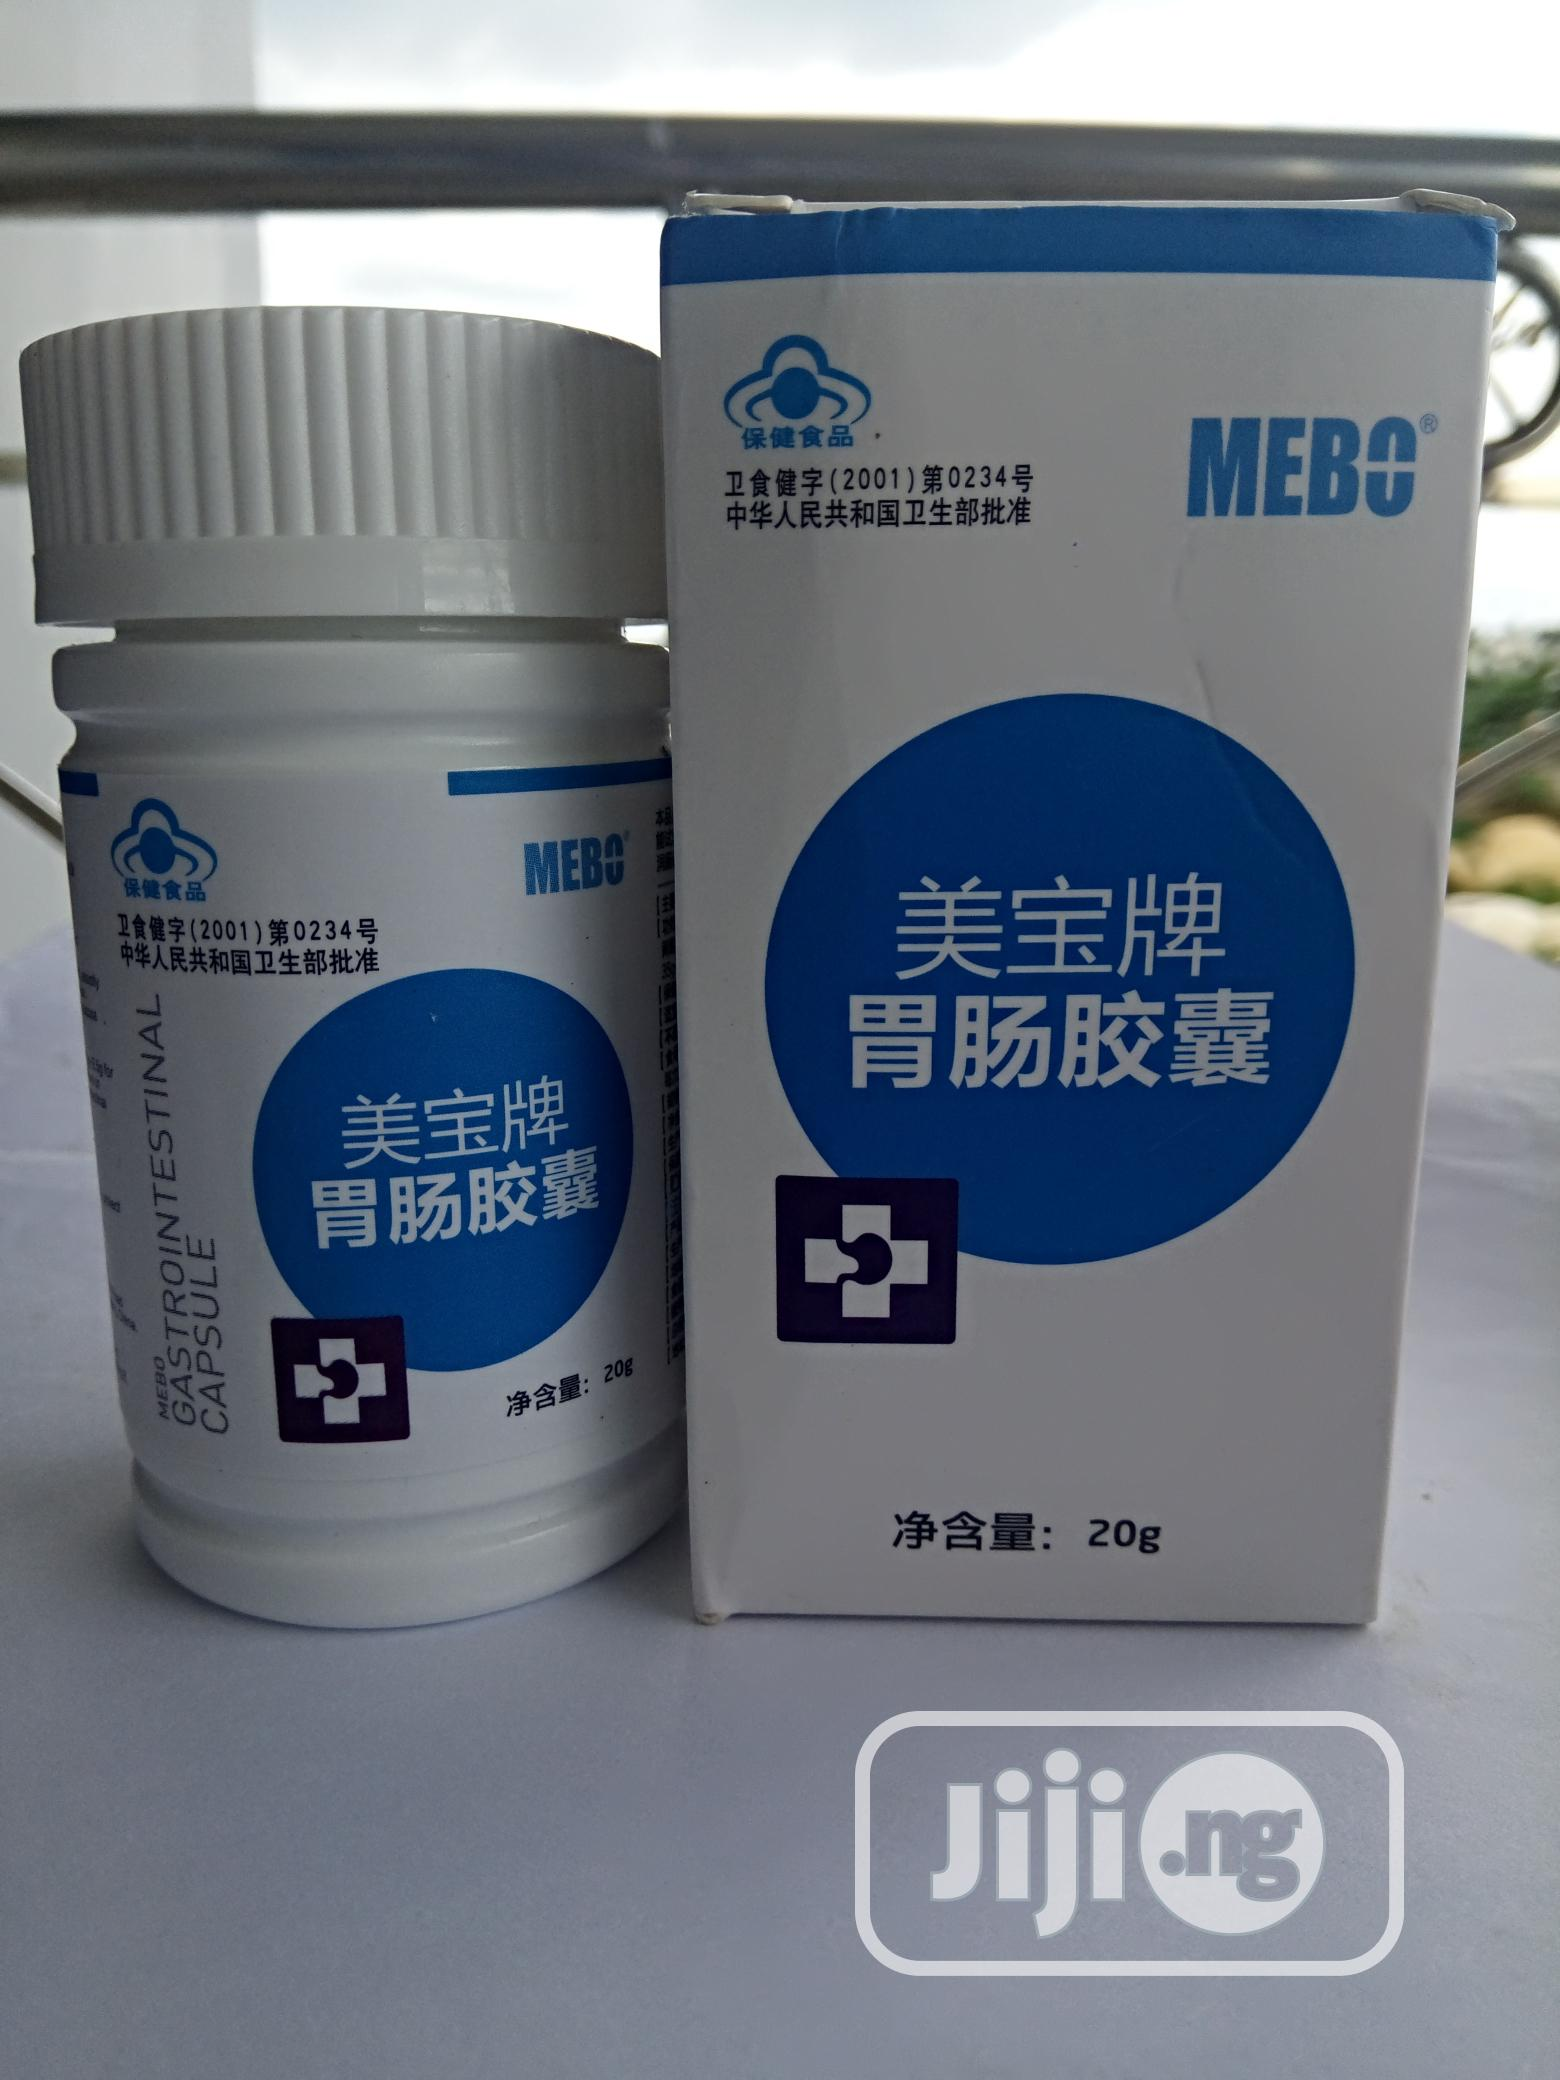 Get Super Fast Relief From Ulcer With Norland Mebo GI Capsules